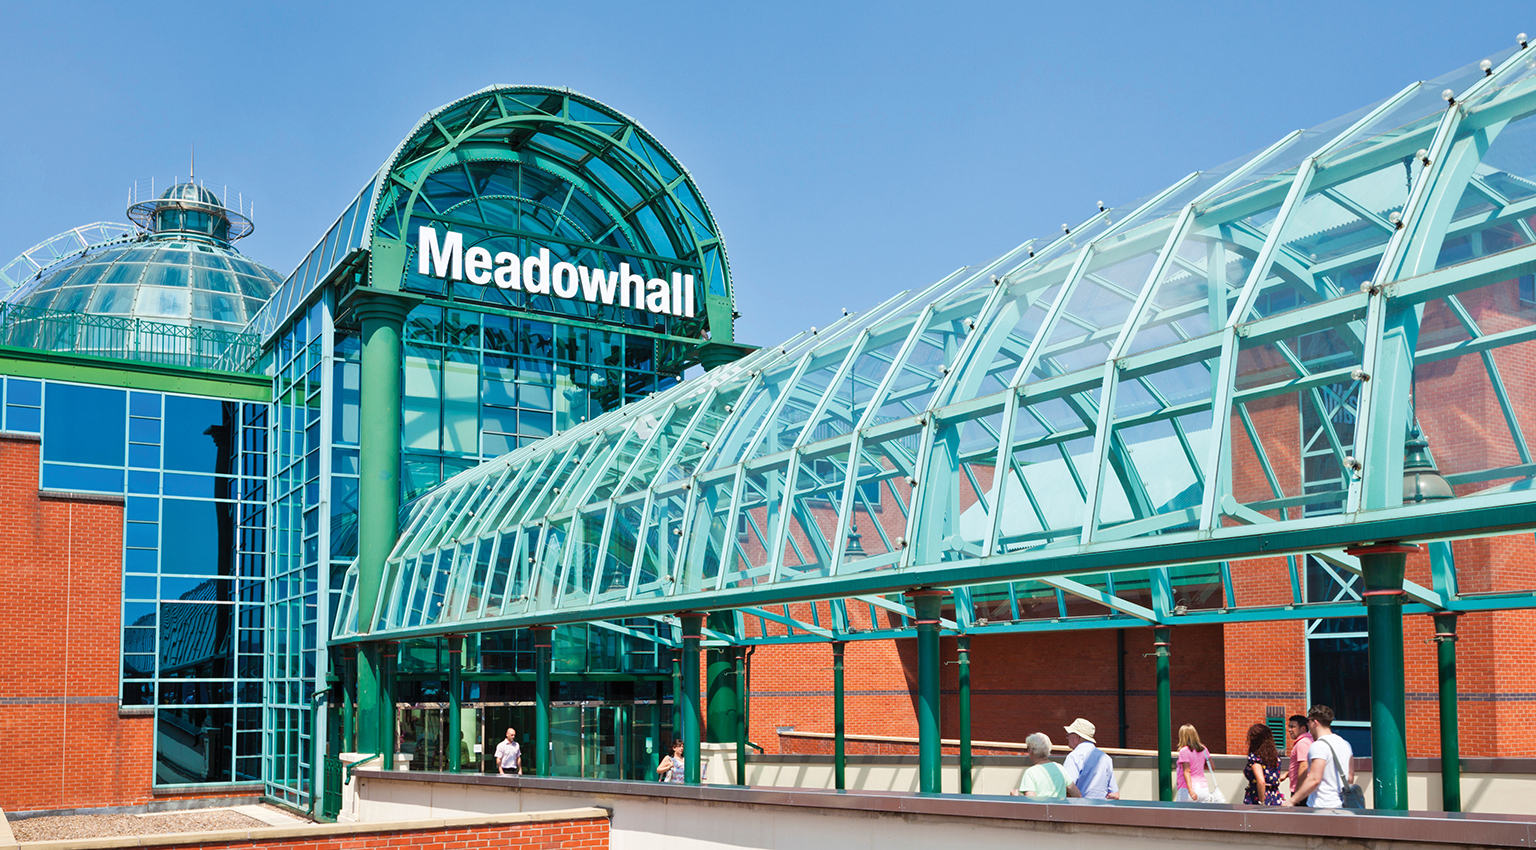 CR01J2 meadowhall shopping centre mall sheffield south yorkshire england uk gb eu europe